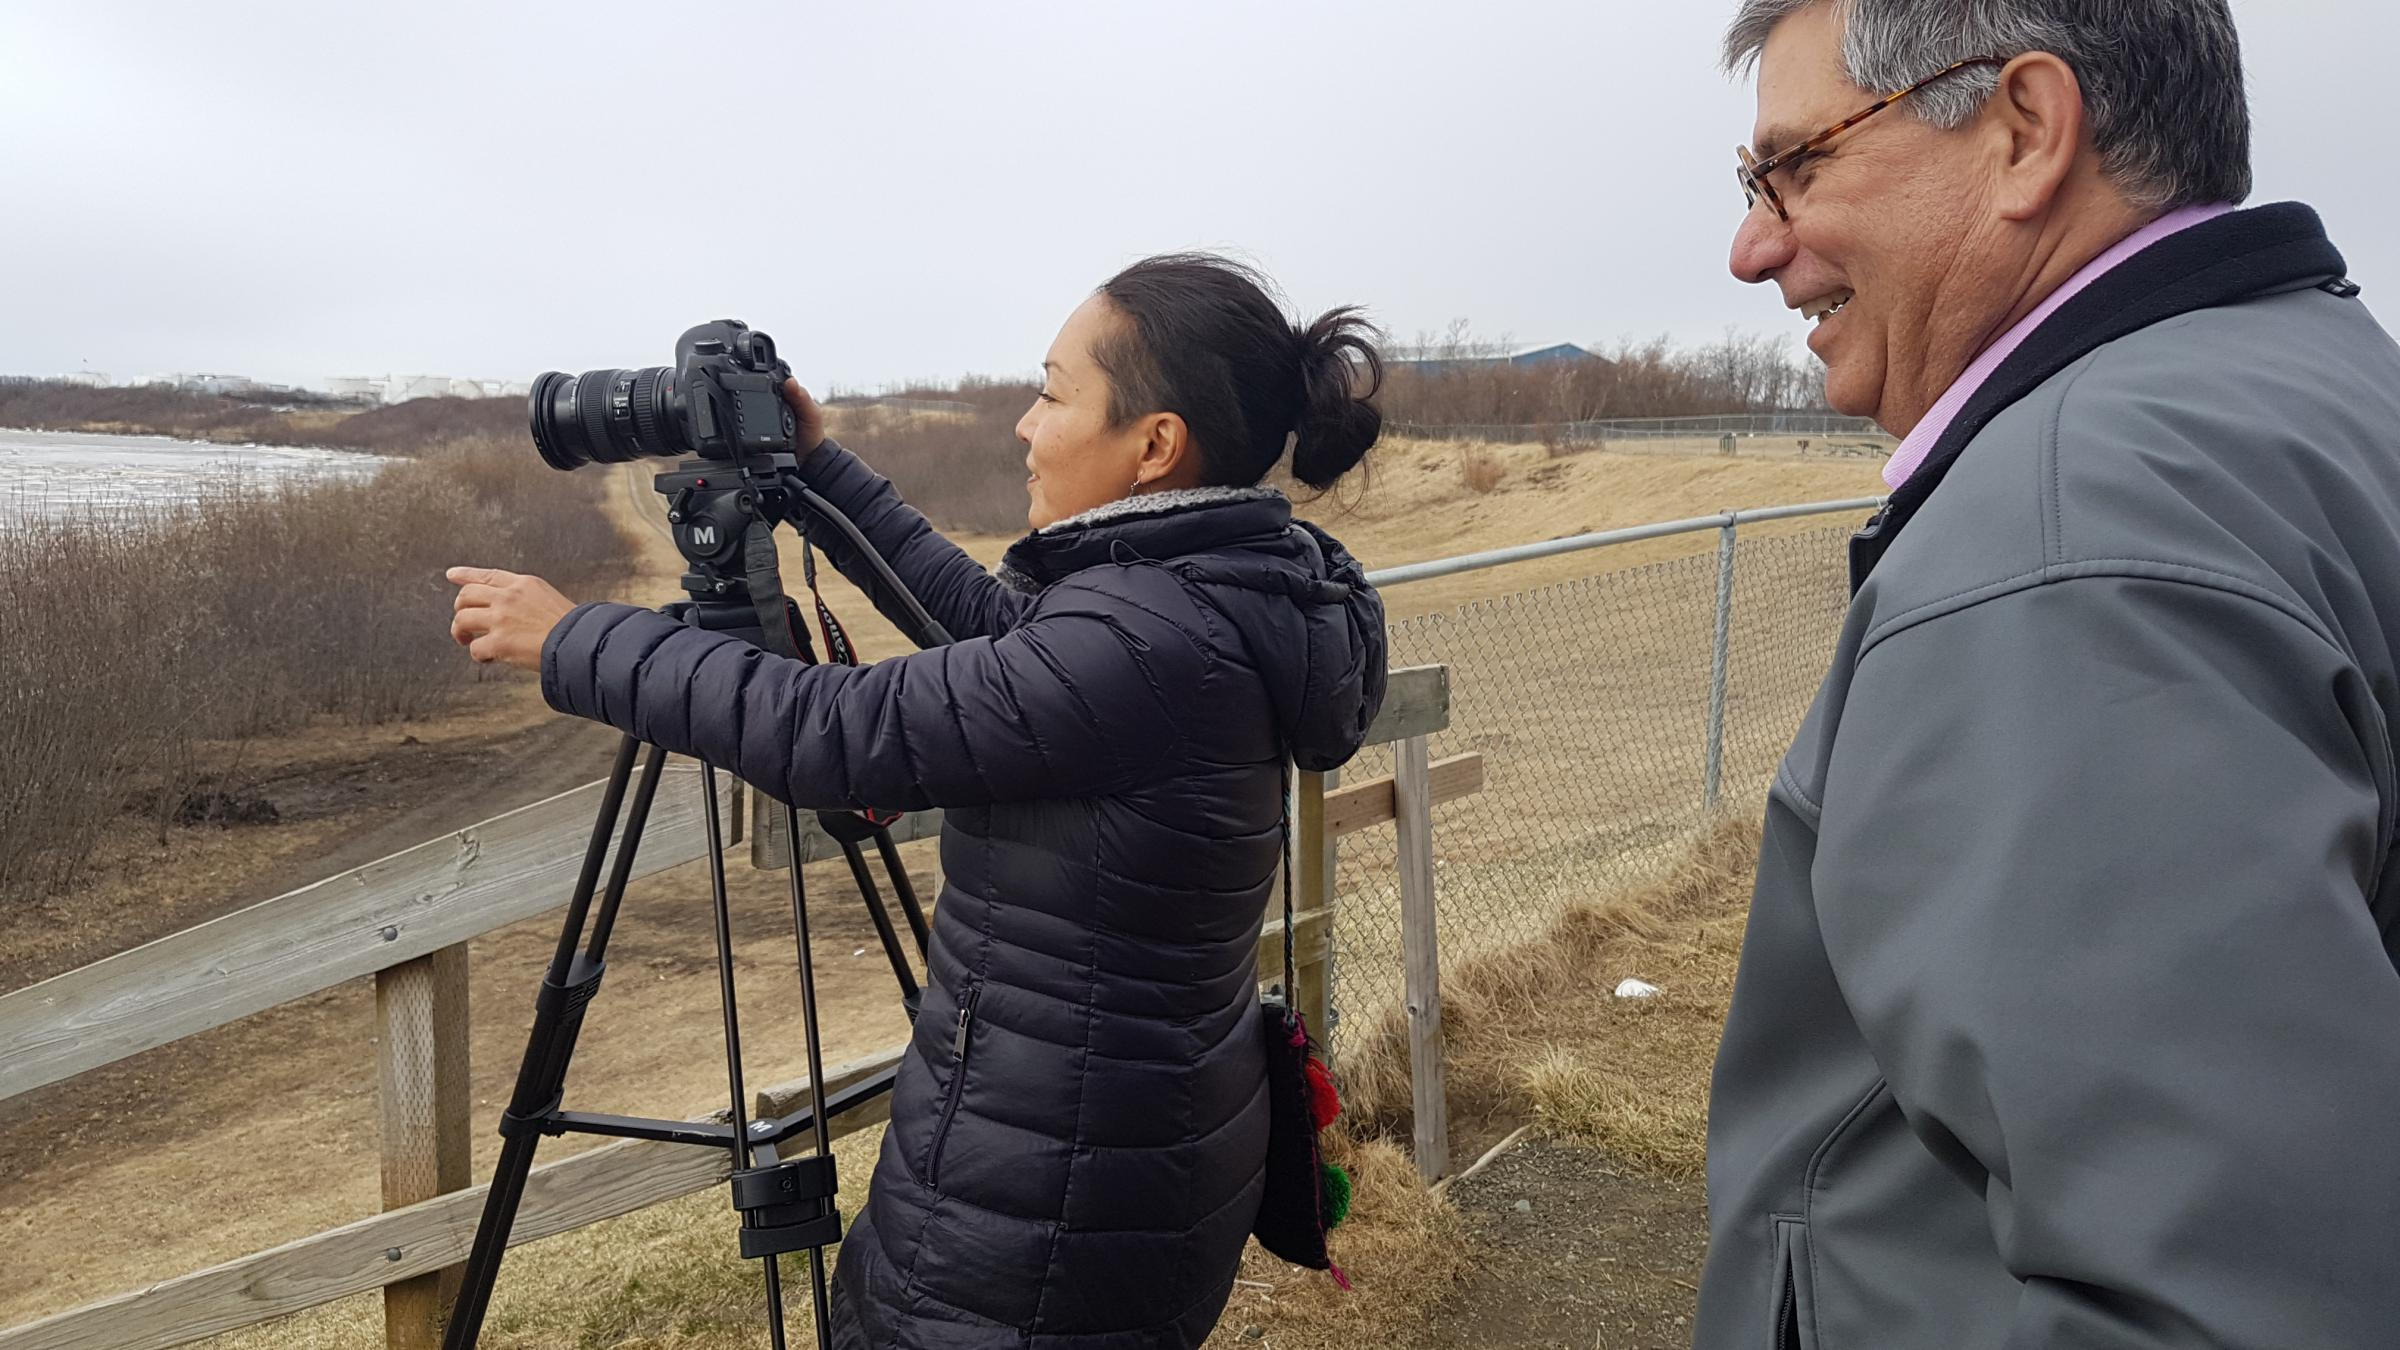 Videographer Jacqueline Cleveland, left, films the Kuskokwim River on May 3, 2018, with Mark Trahant as they report on the Dental Health Aide Therapist Program in Bethel. (Photo by Christine Trudeau/KYUK)